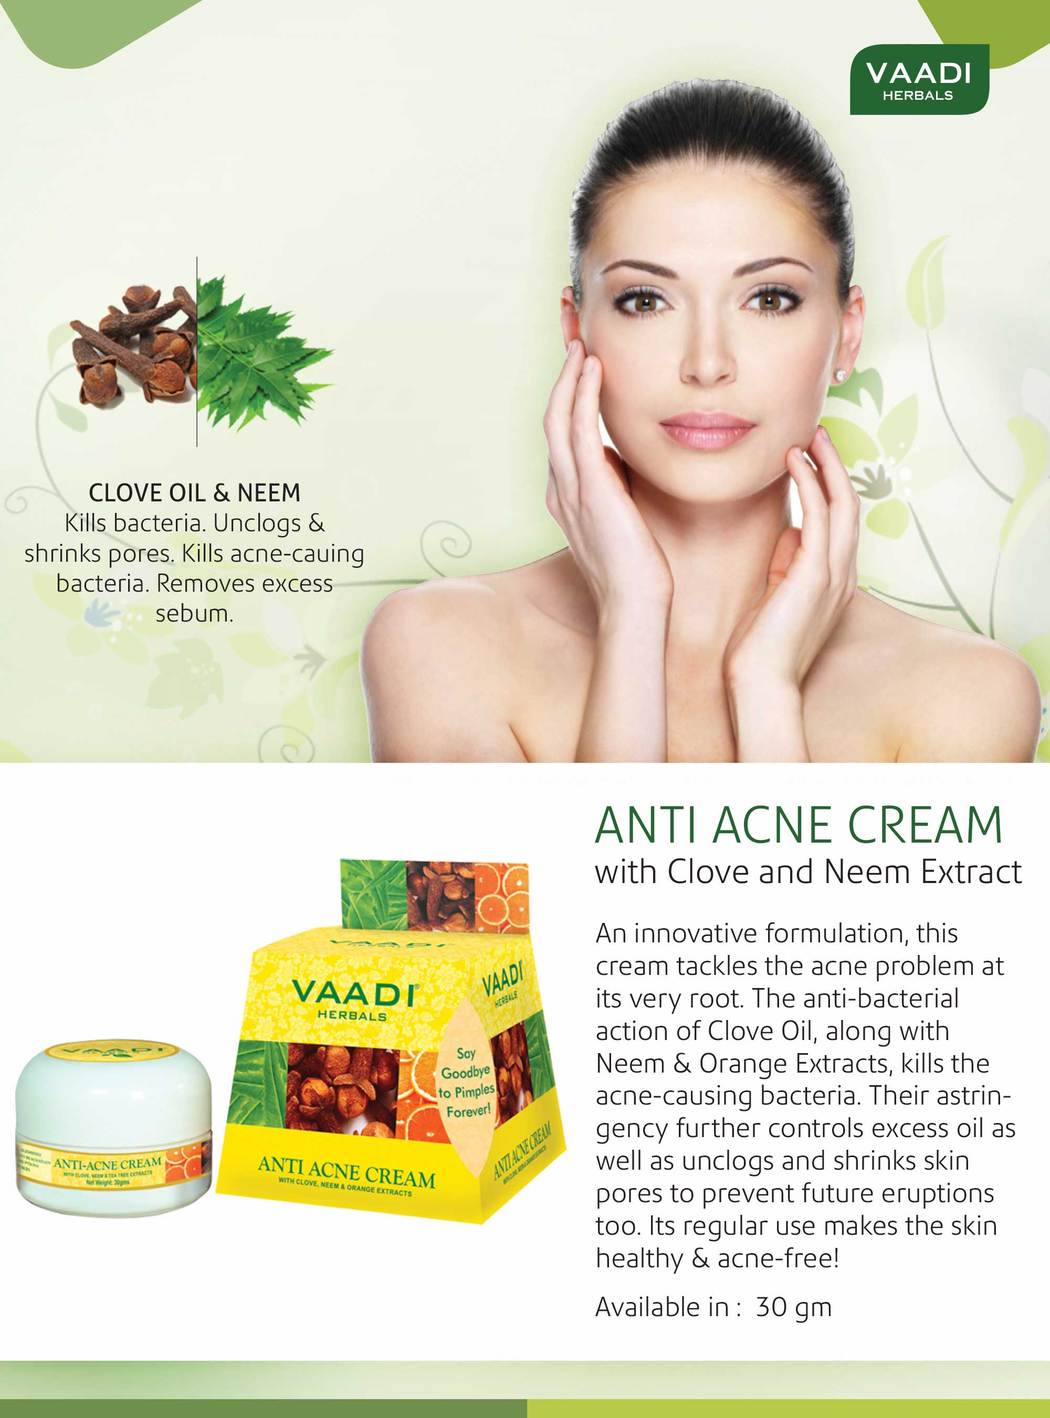 Anti Acne Organic Cream with Clove Oil & Neem Extract - Anti Bacterial Therapy - Controls Excess Oil - Prevents Acne (3 x 30 gms / 1.1 oz)